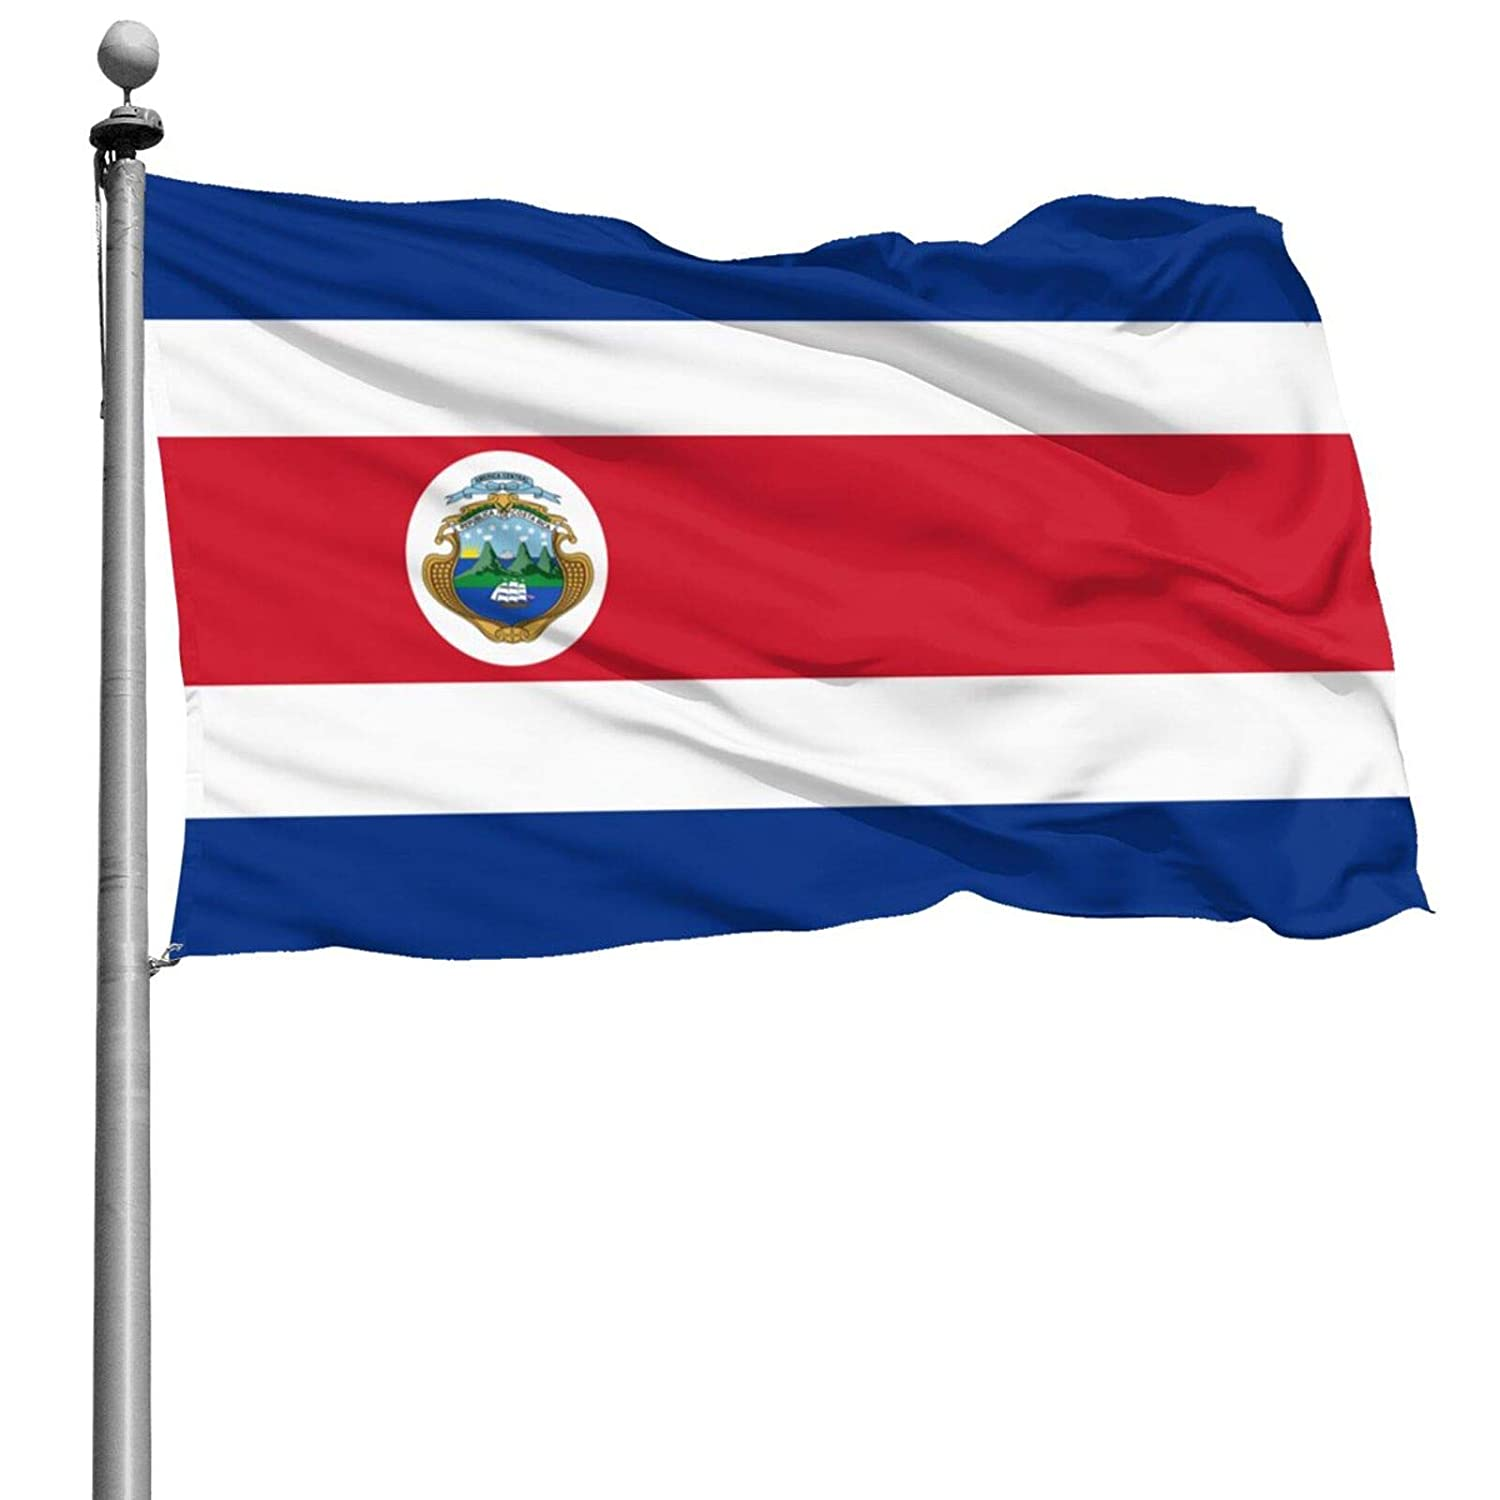 Costa Rica Flag 4x6 Ft Parade Flag Vivid Color Home Flag Outdoor Banner Uv Fade Resistant Garden Flag For Dorm Room Parties Decor Indoor And Outdoor Use(Not Include Pole)